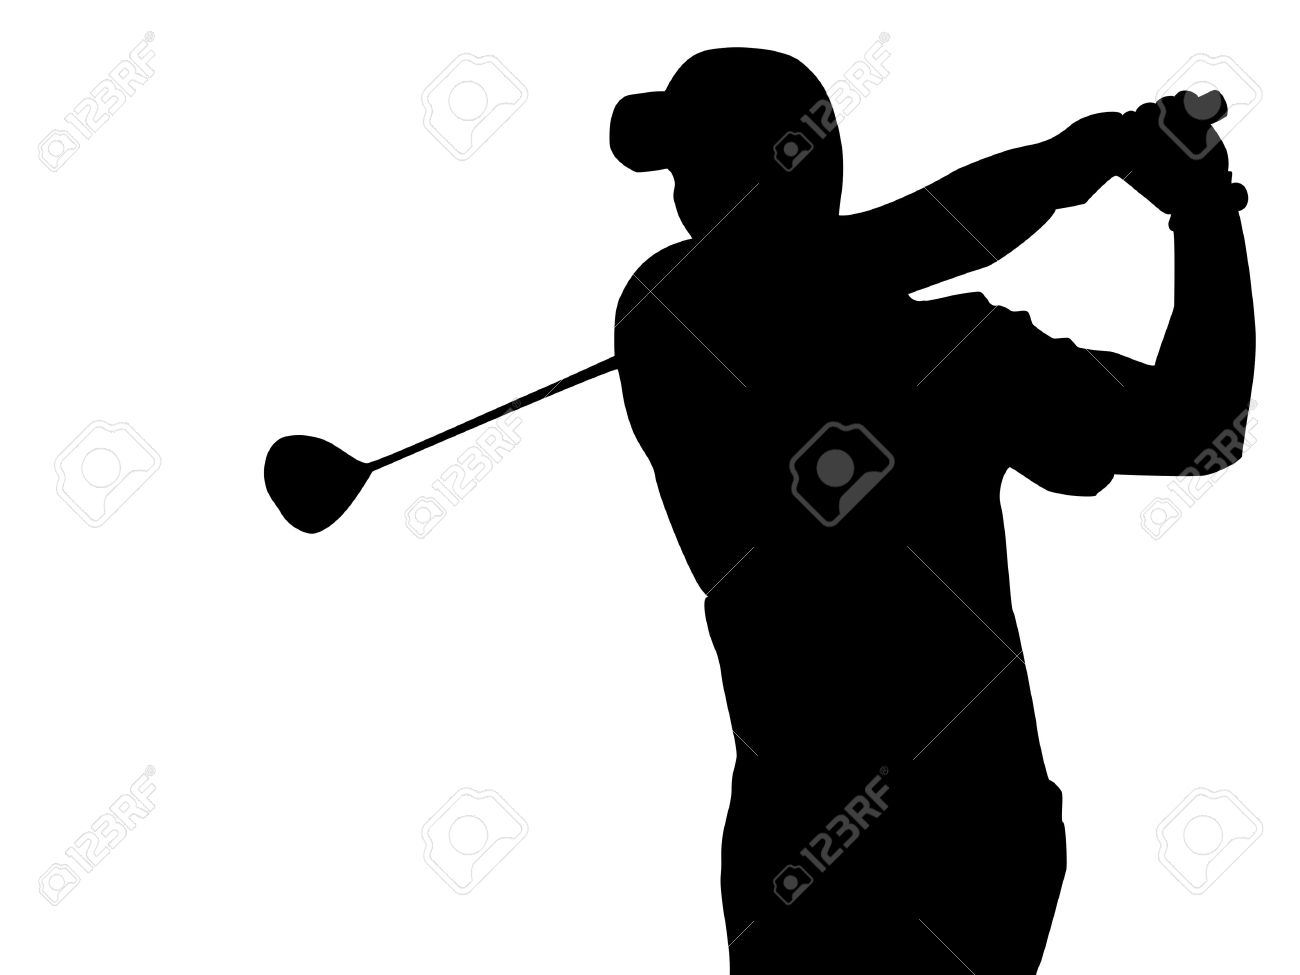 Epa Golfer Silhouette Royalty Free Cliparts Vectors And Stock